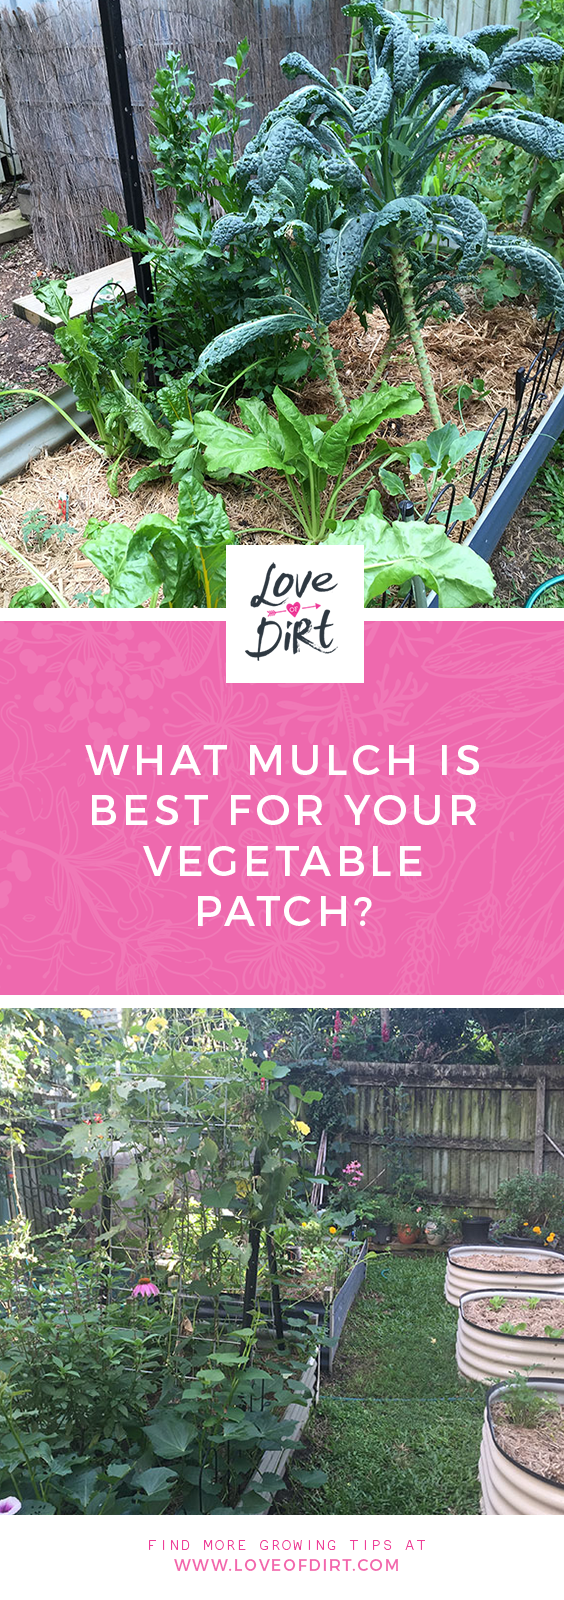 What mulch is best for your vegetable patch?